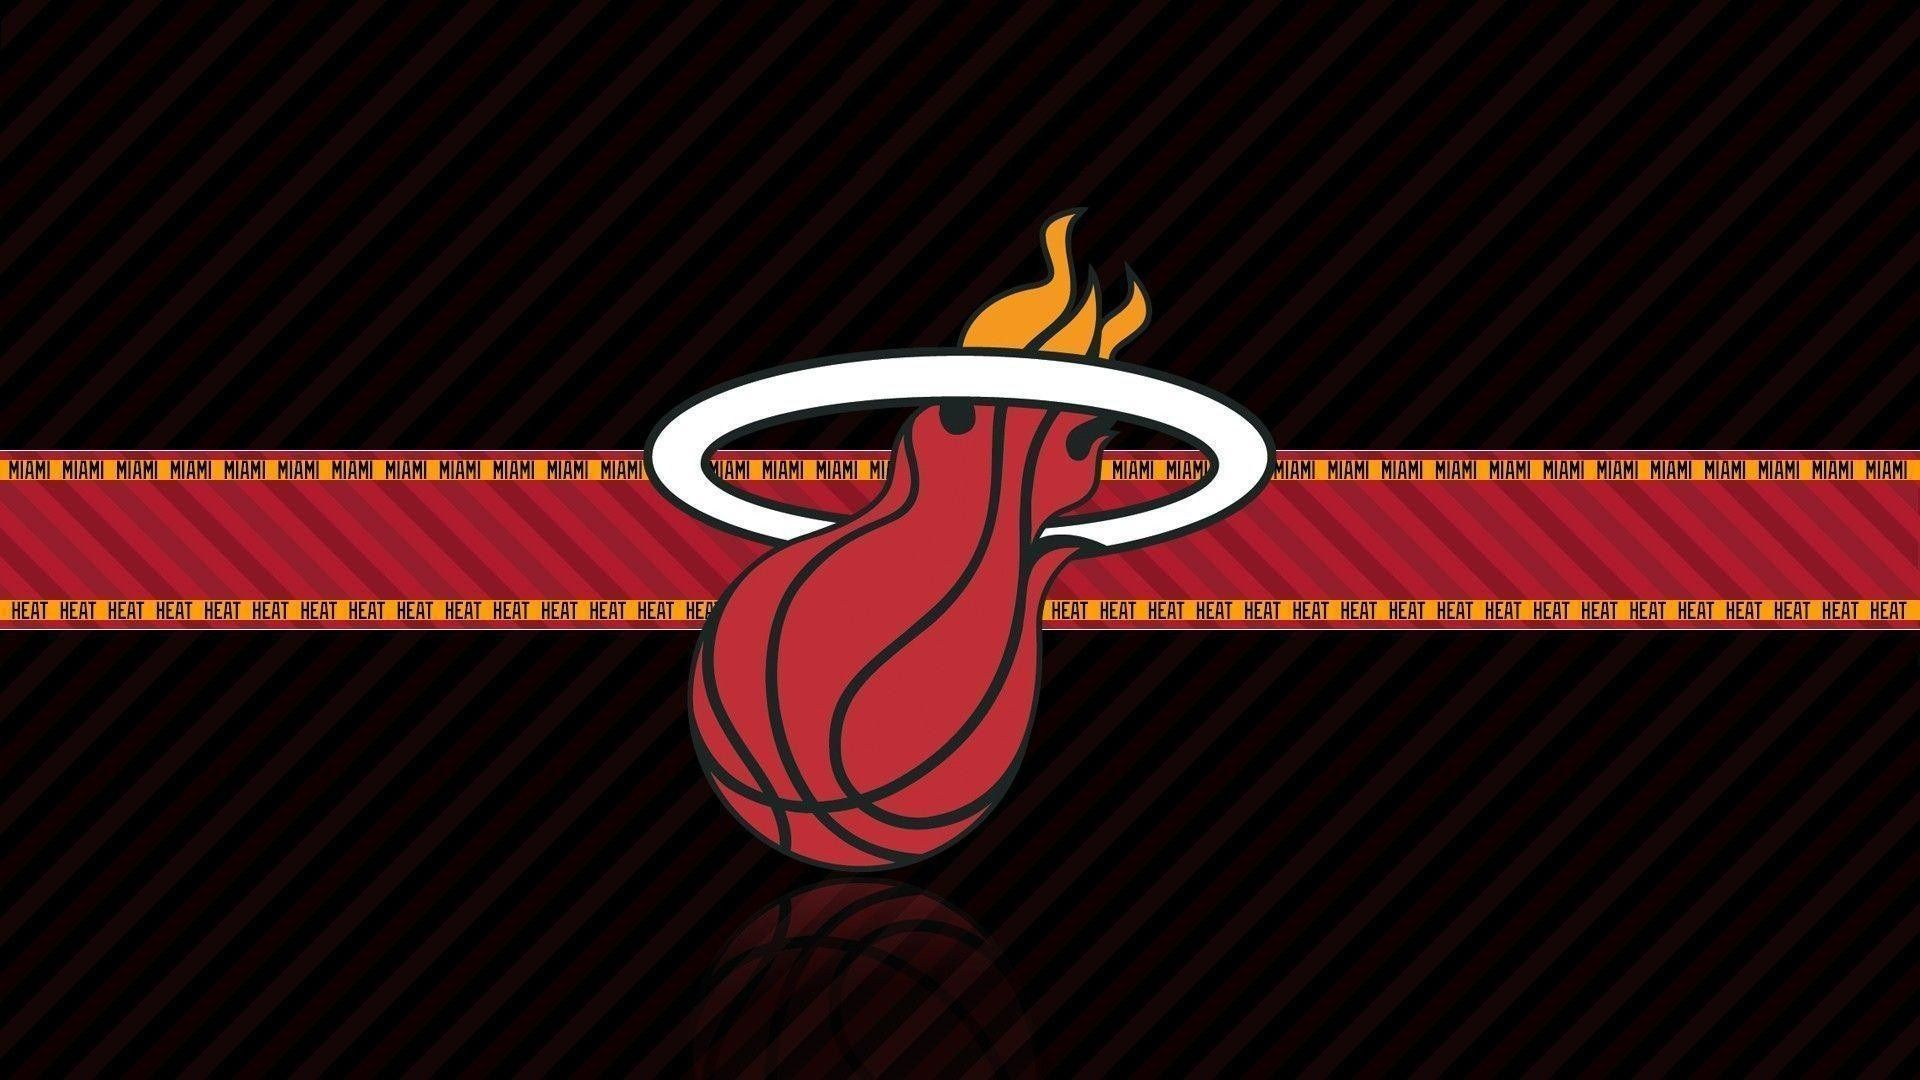 Hd Miami Heat Wallpapers Miami Heat Miami Heat Logo Miami